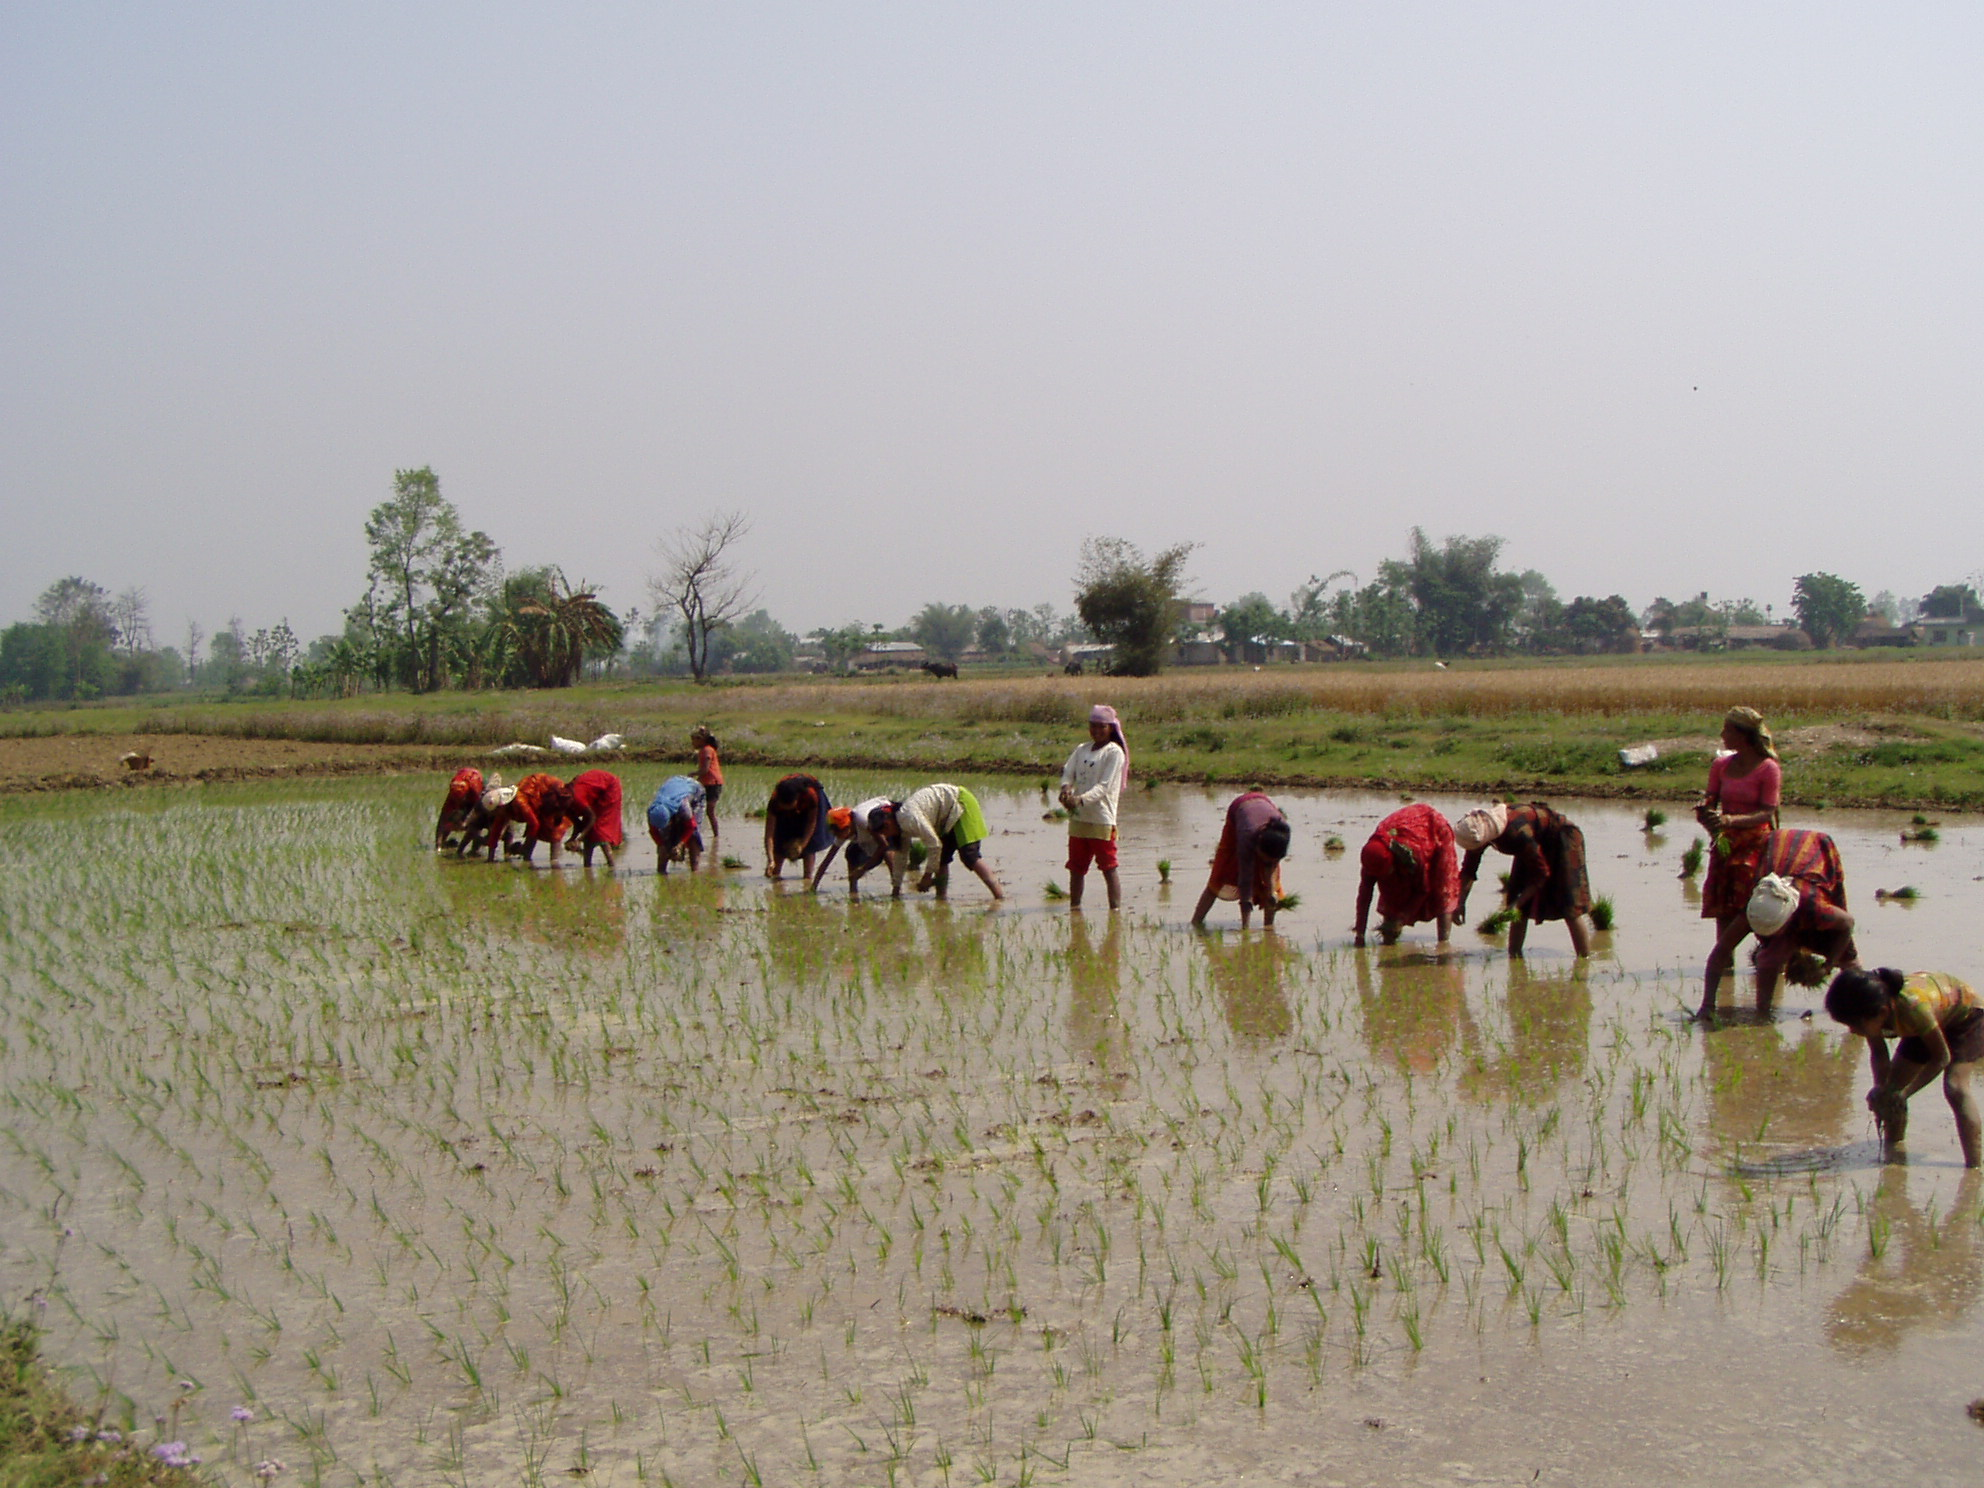 agriculture in nepal Agriculture is the main source of food, income, and employment for the majority the economy is dominated by agriculture agriculture has been the highest priority.